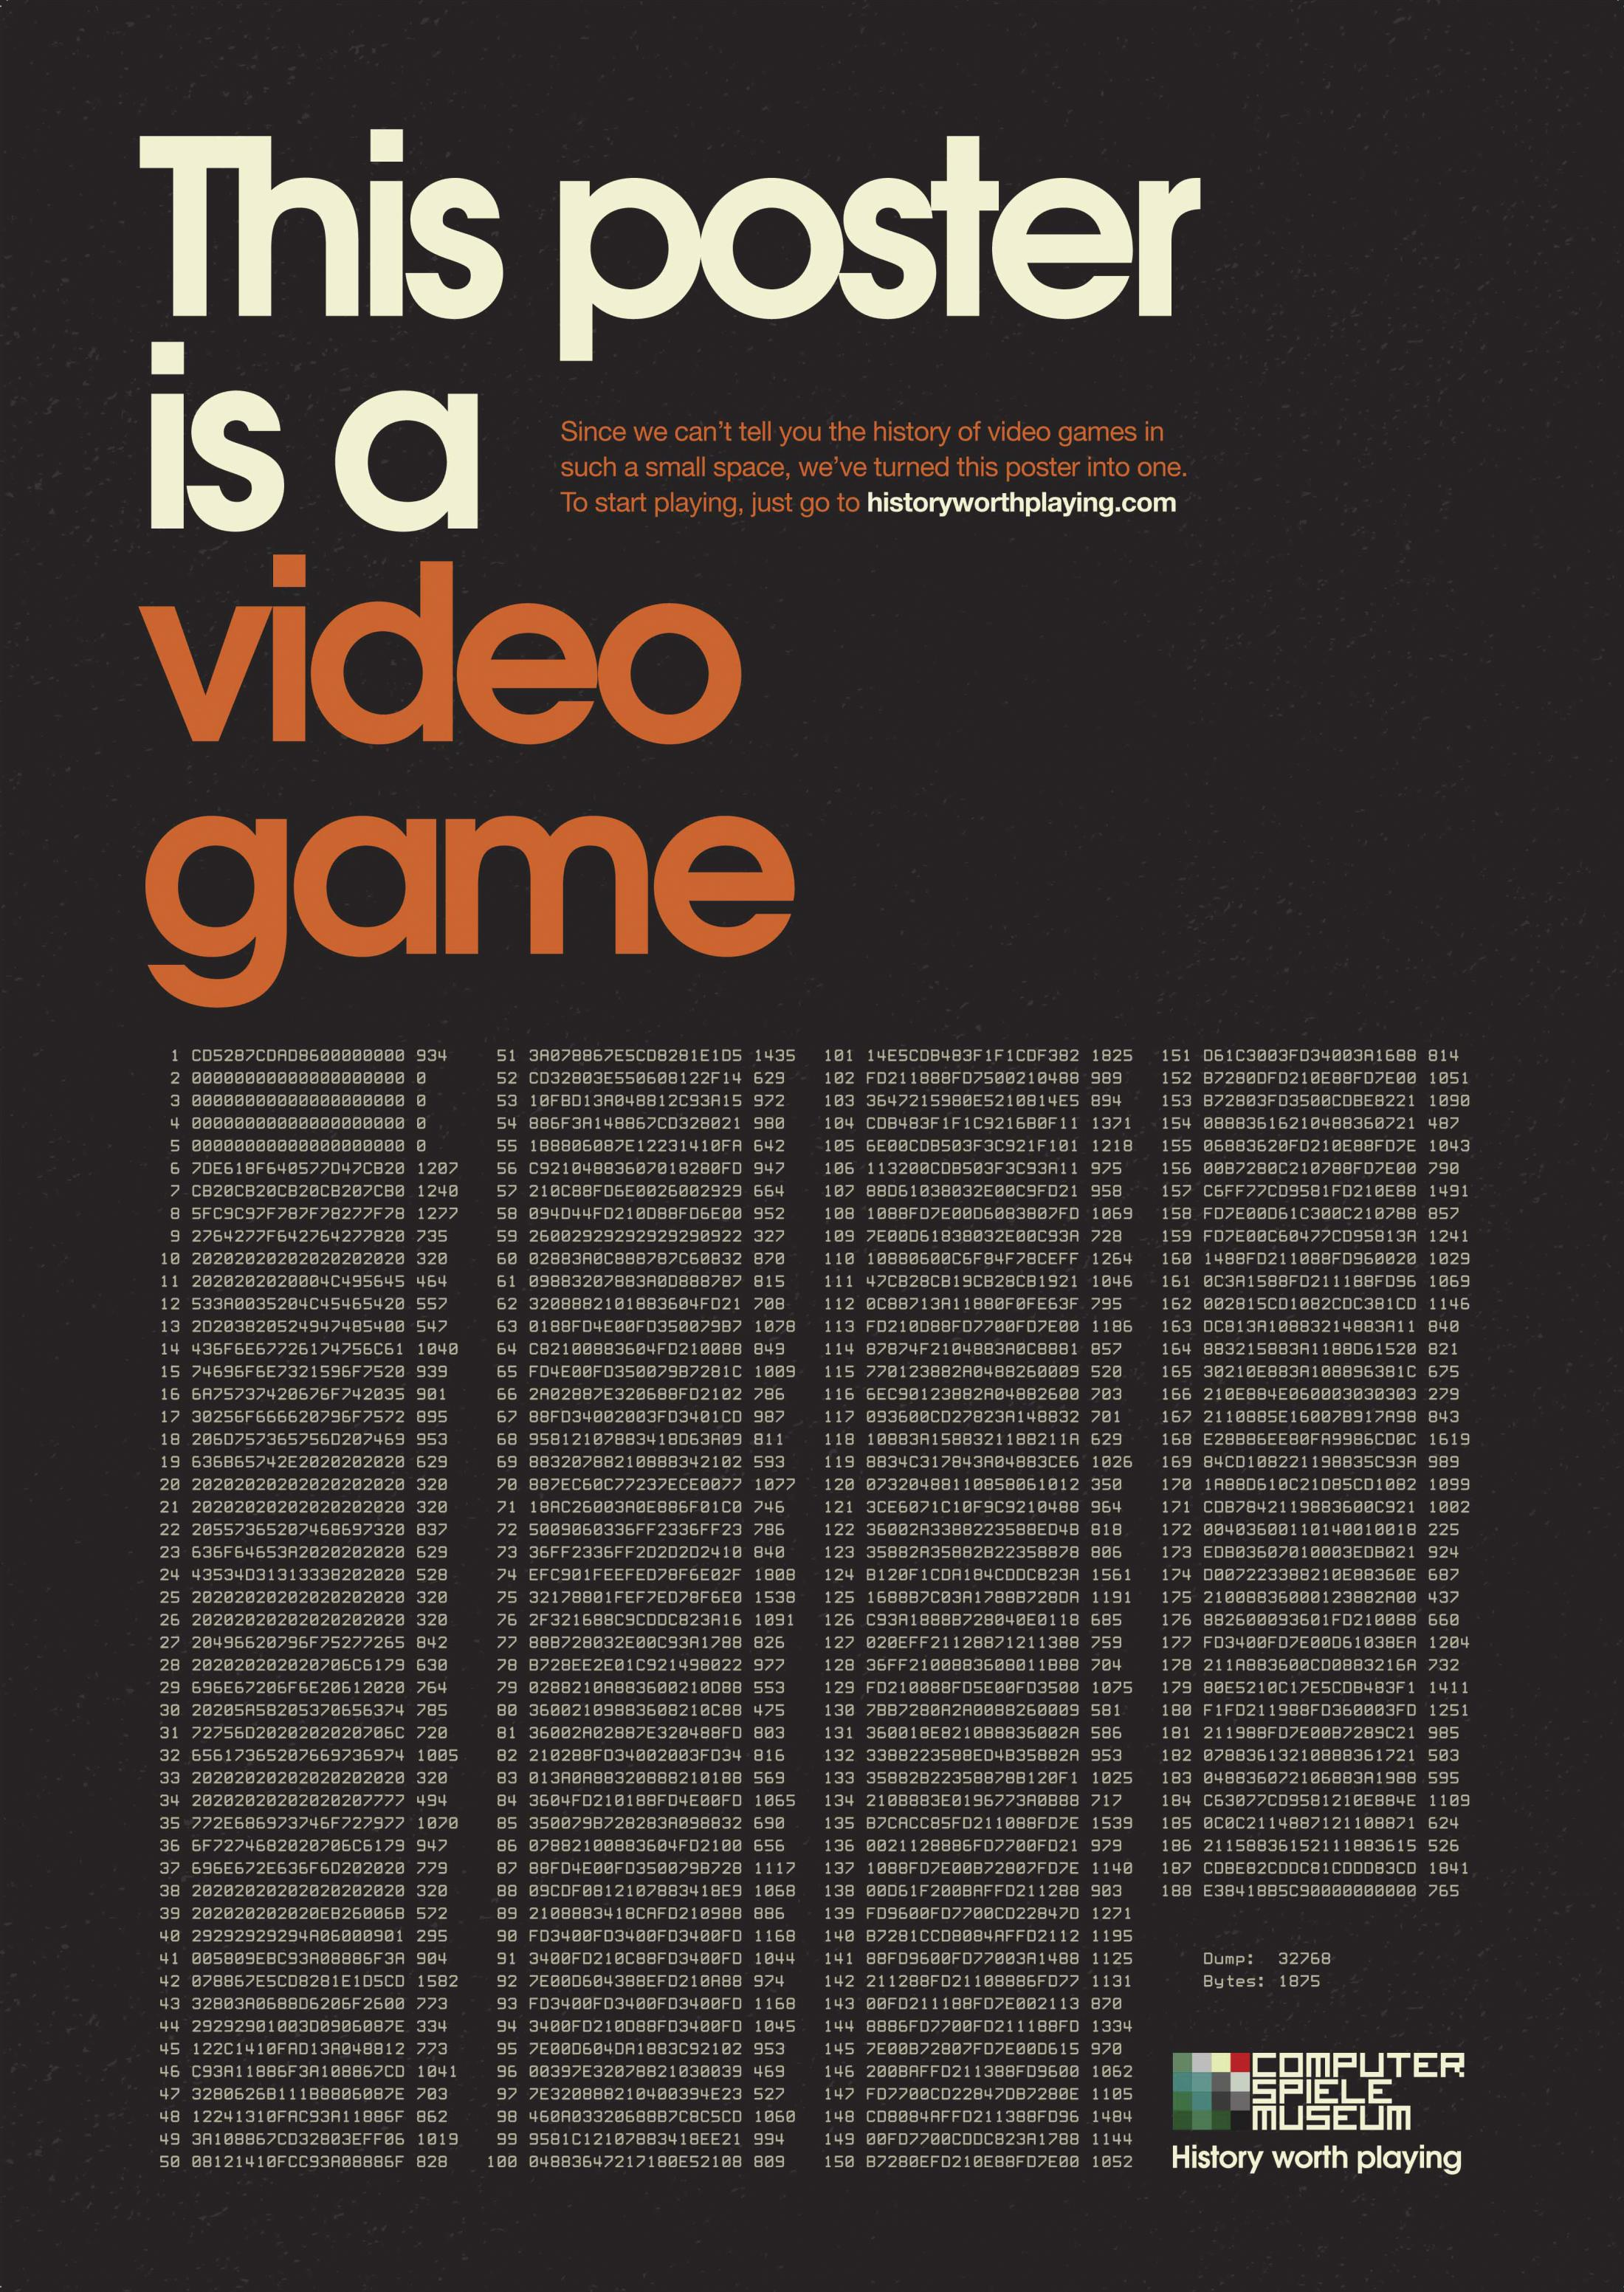 Computer Spiele Museum Integrated Ad - History worth playing